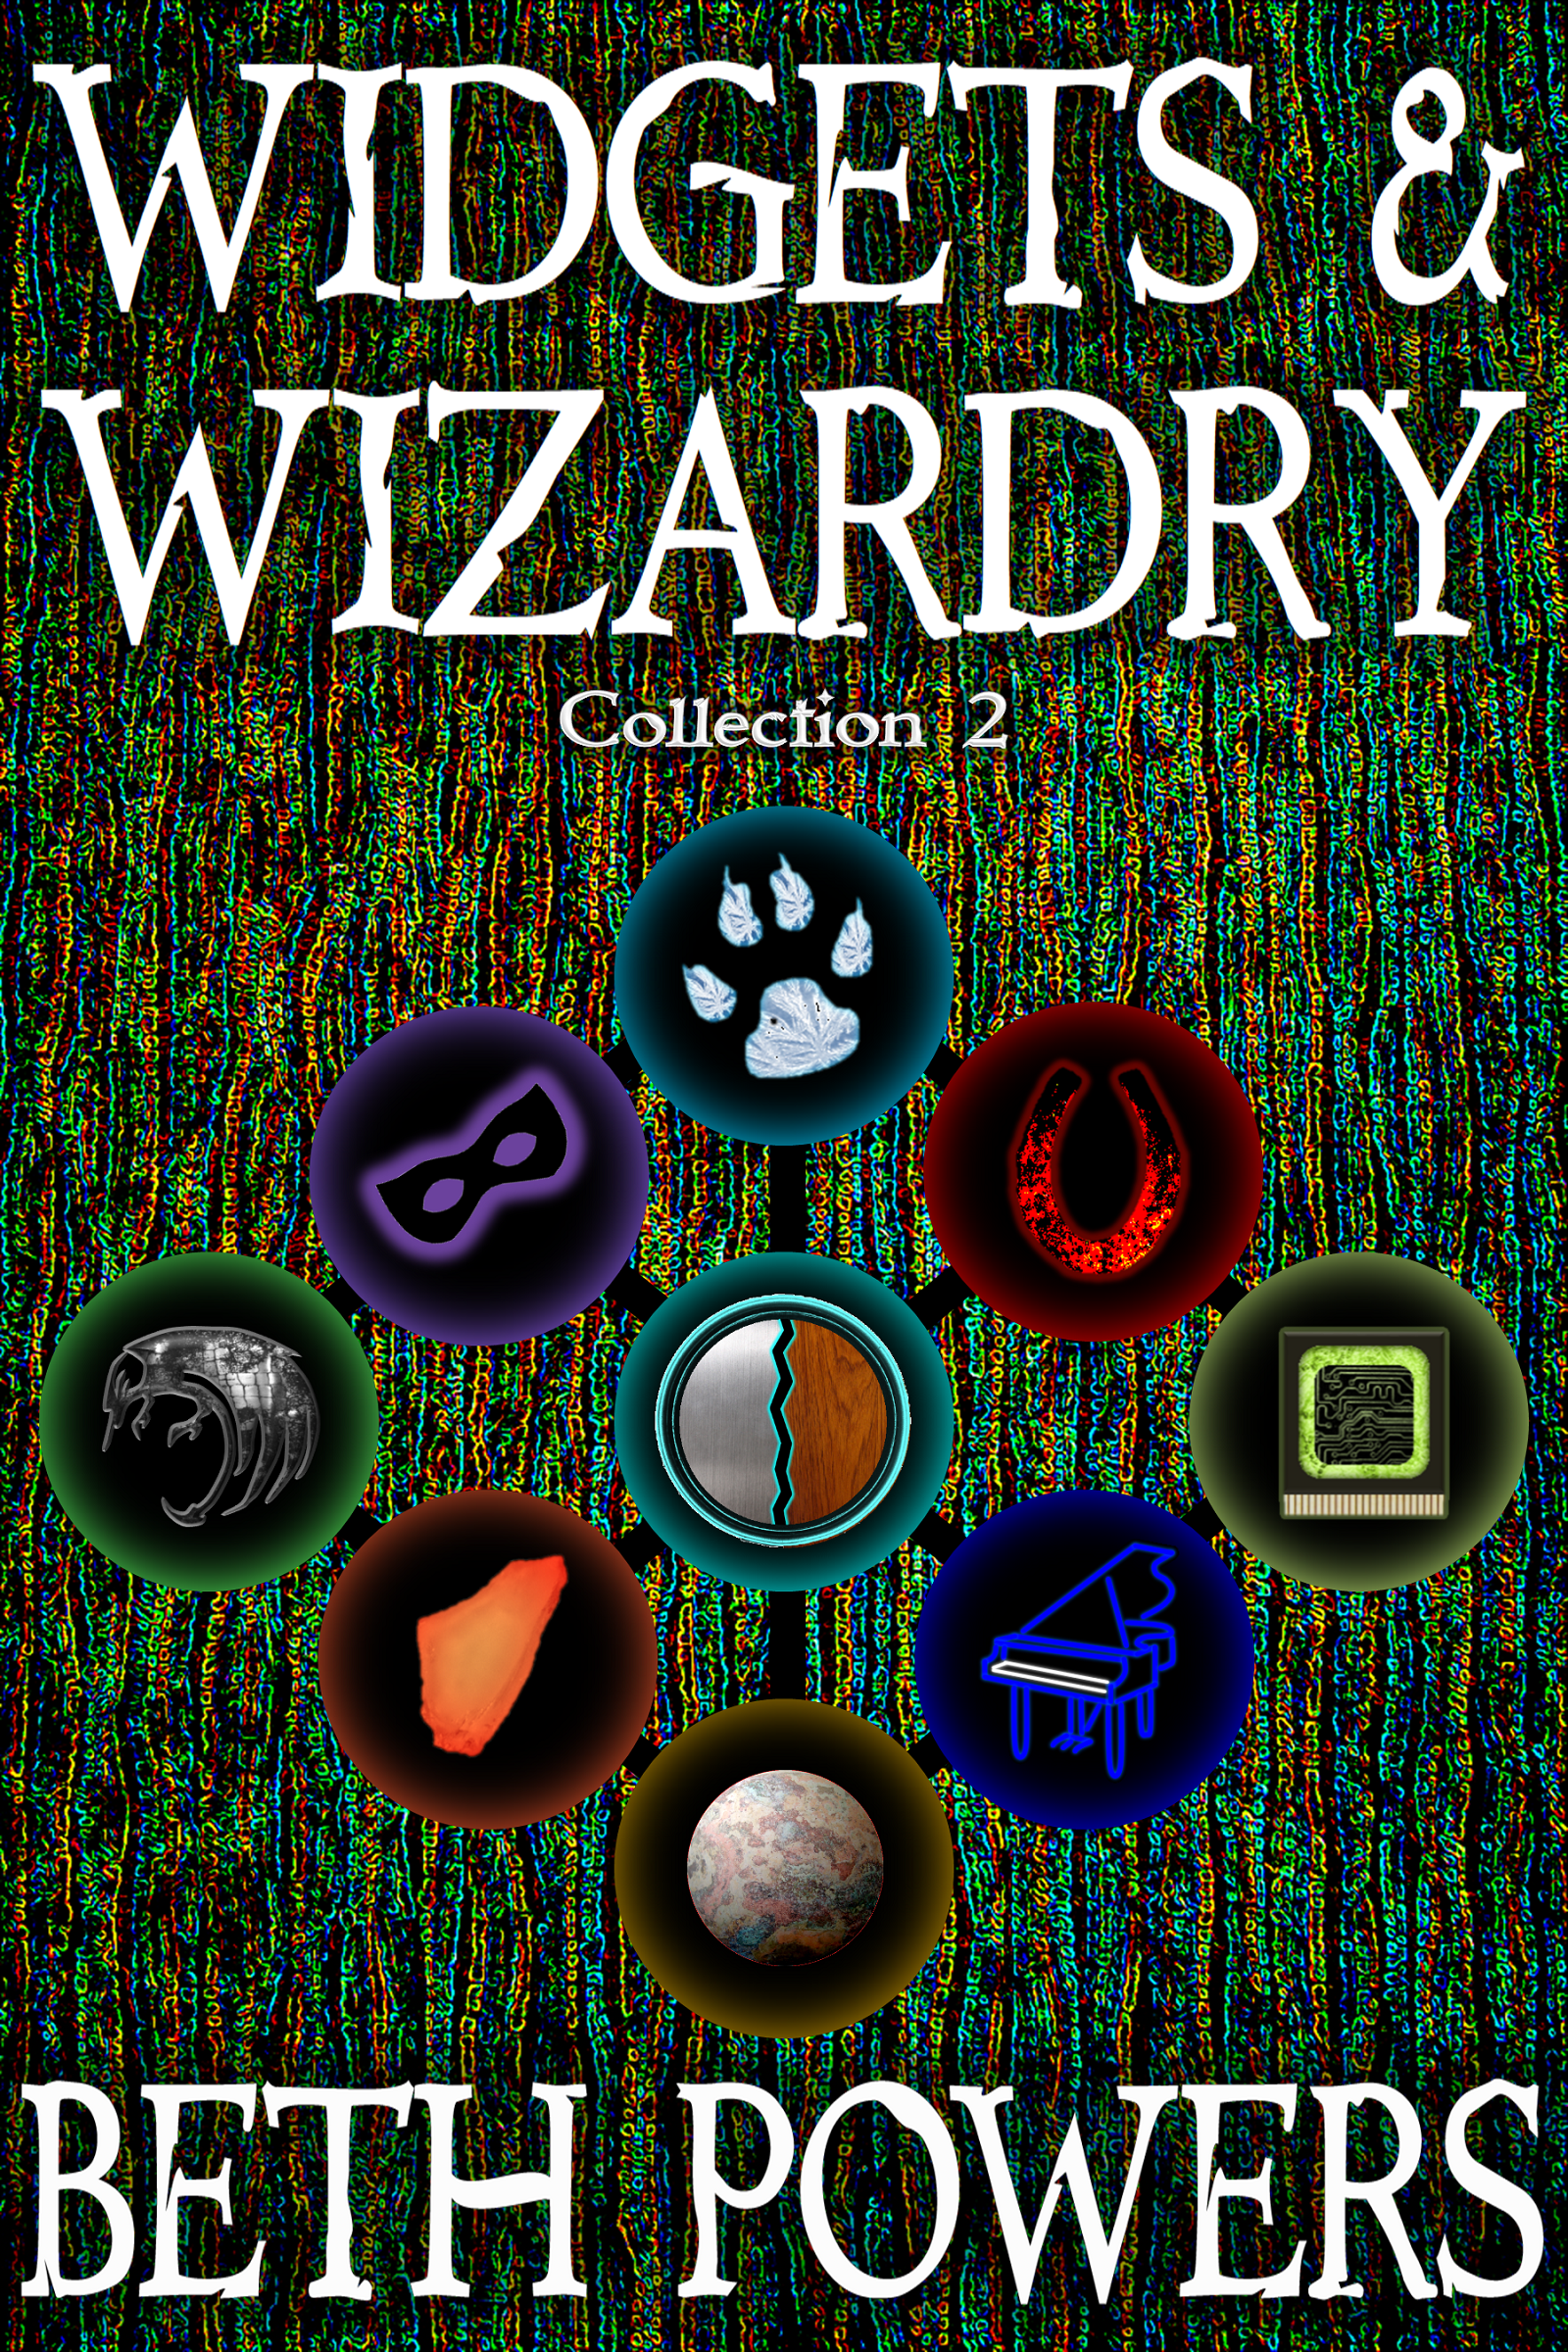 Widgets & Wizardry